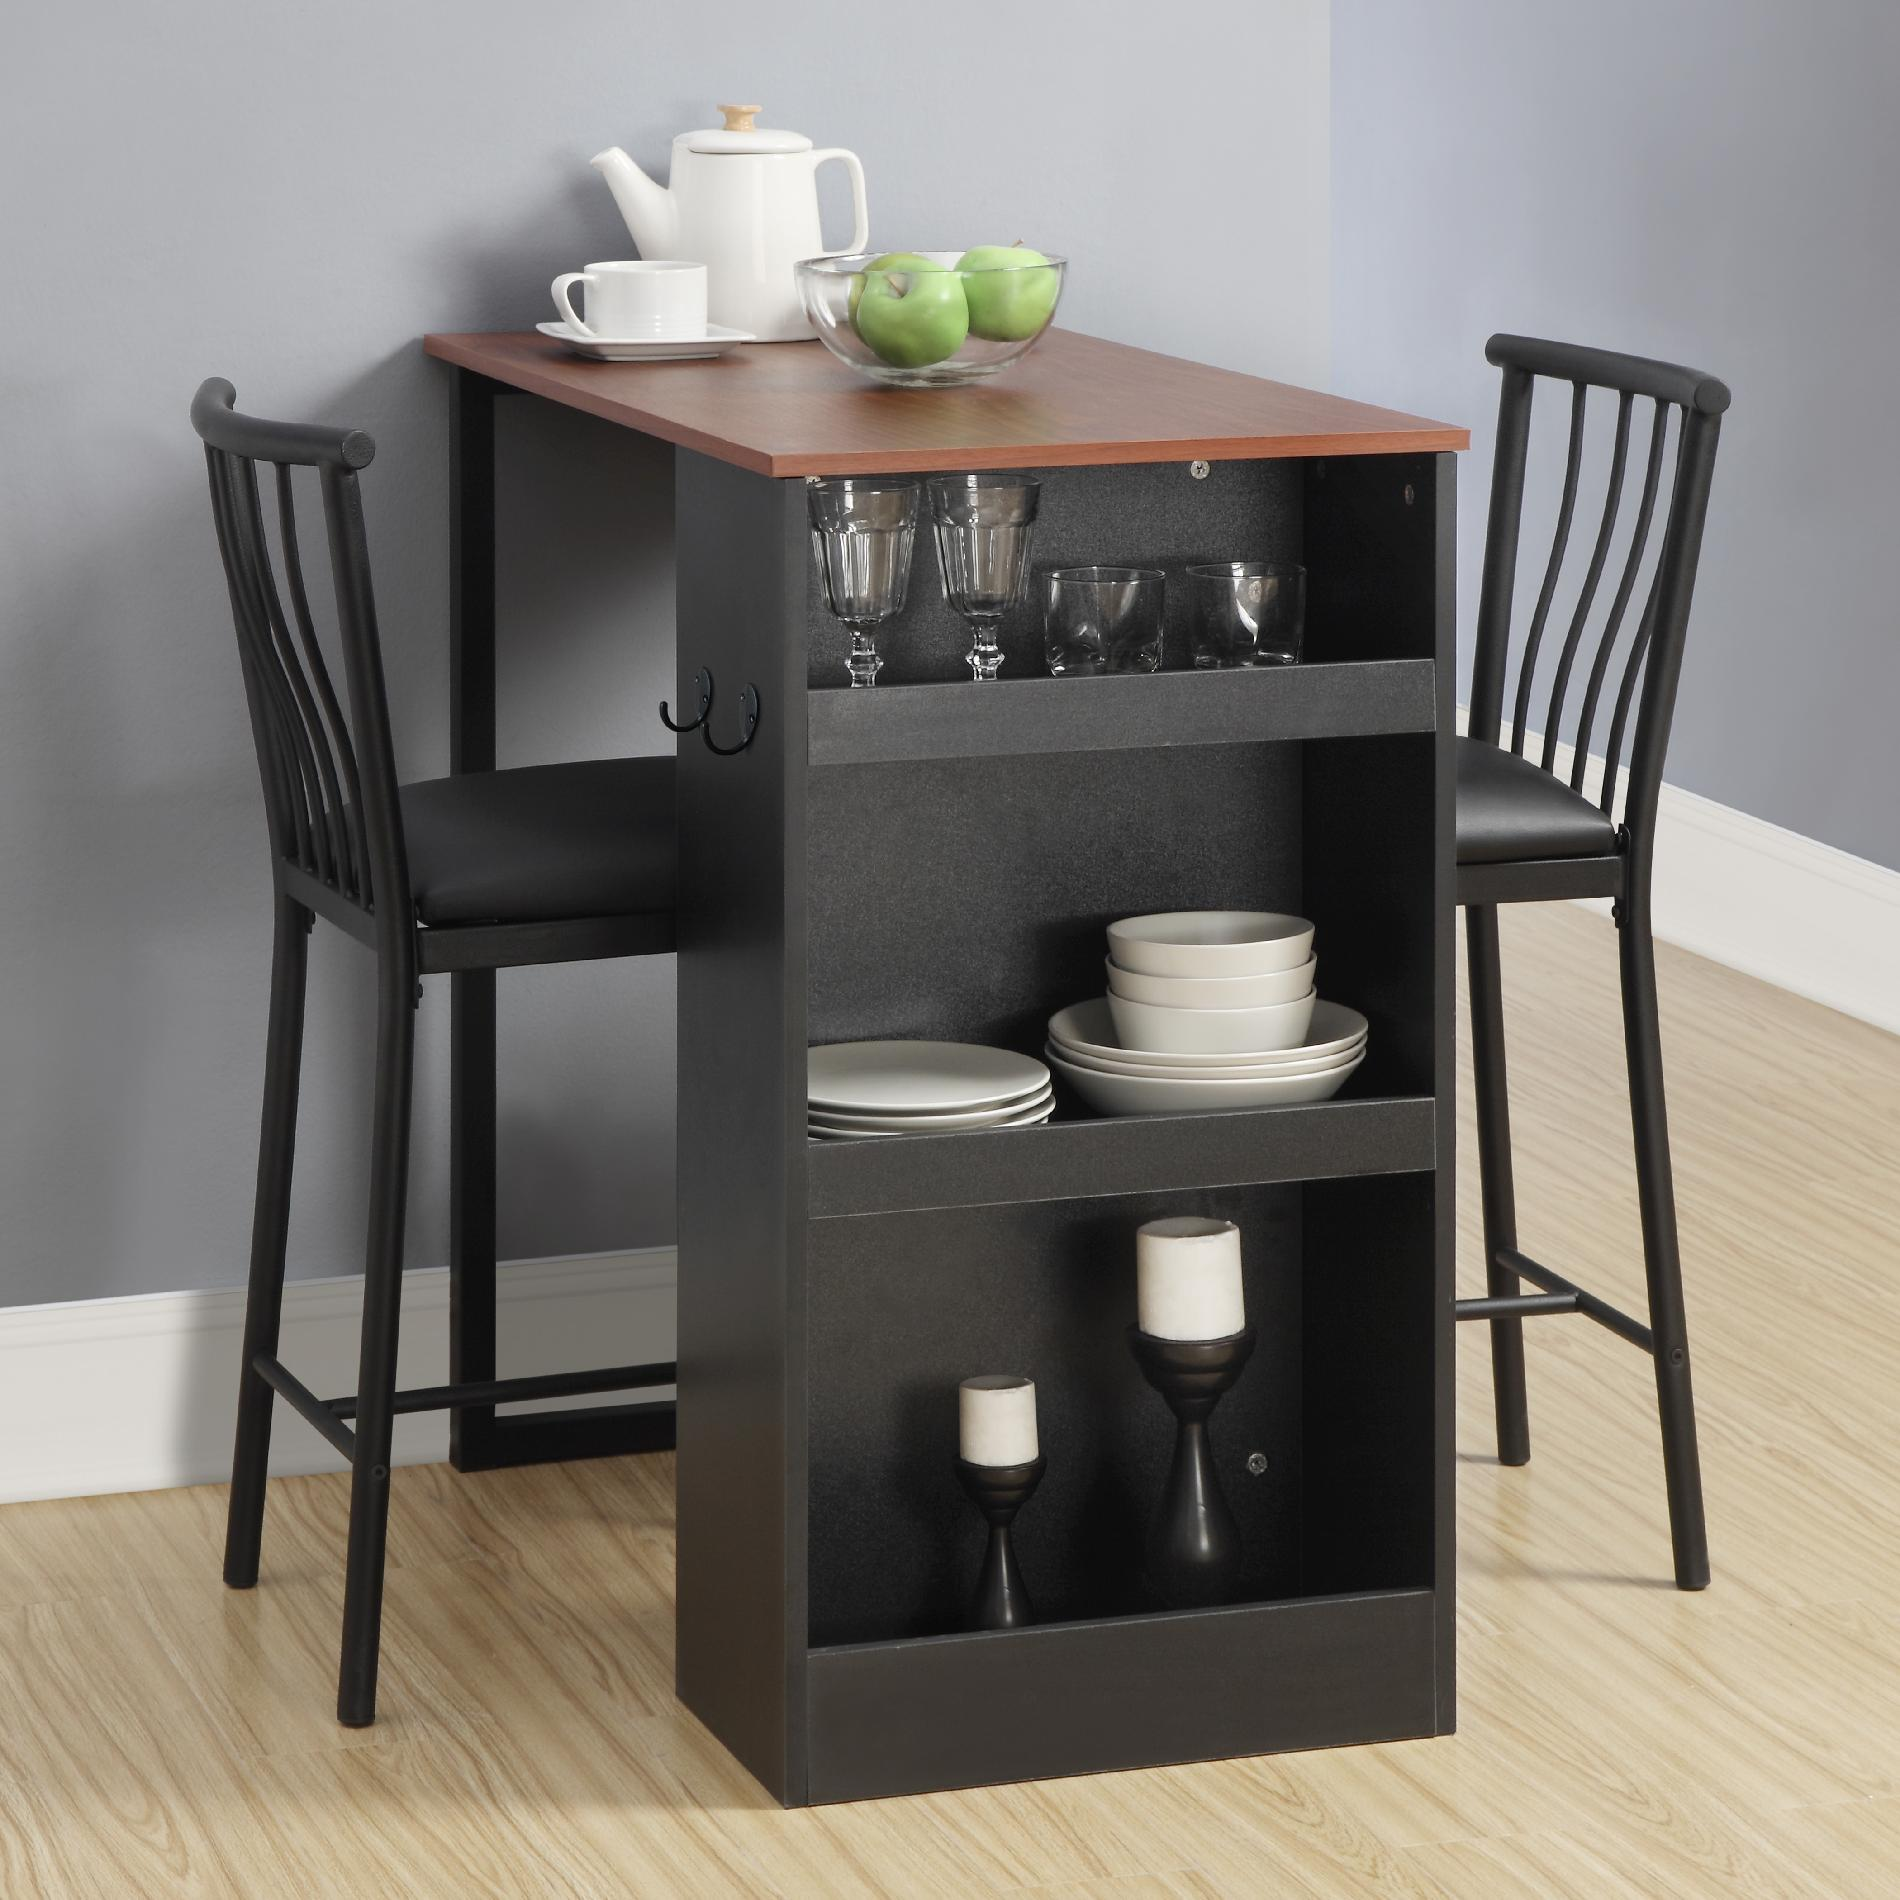 The significance of small dining sets